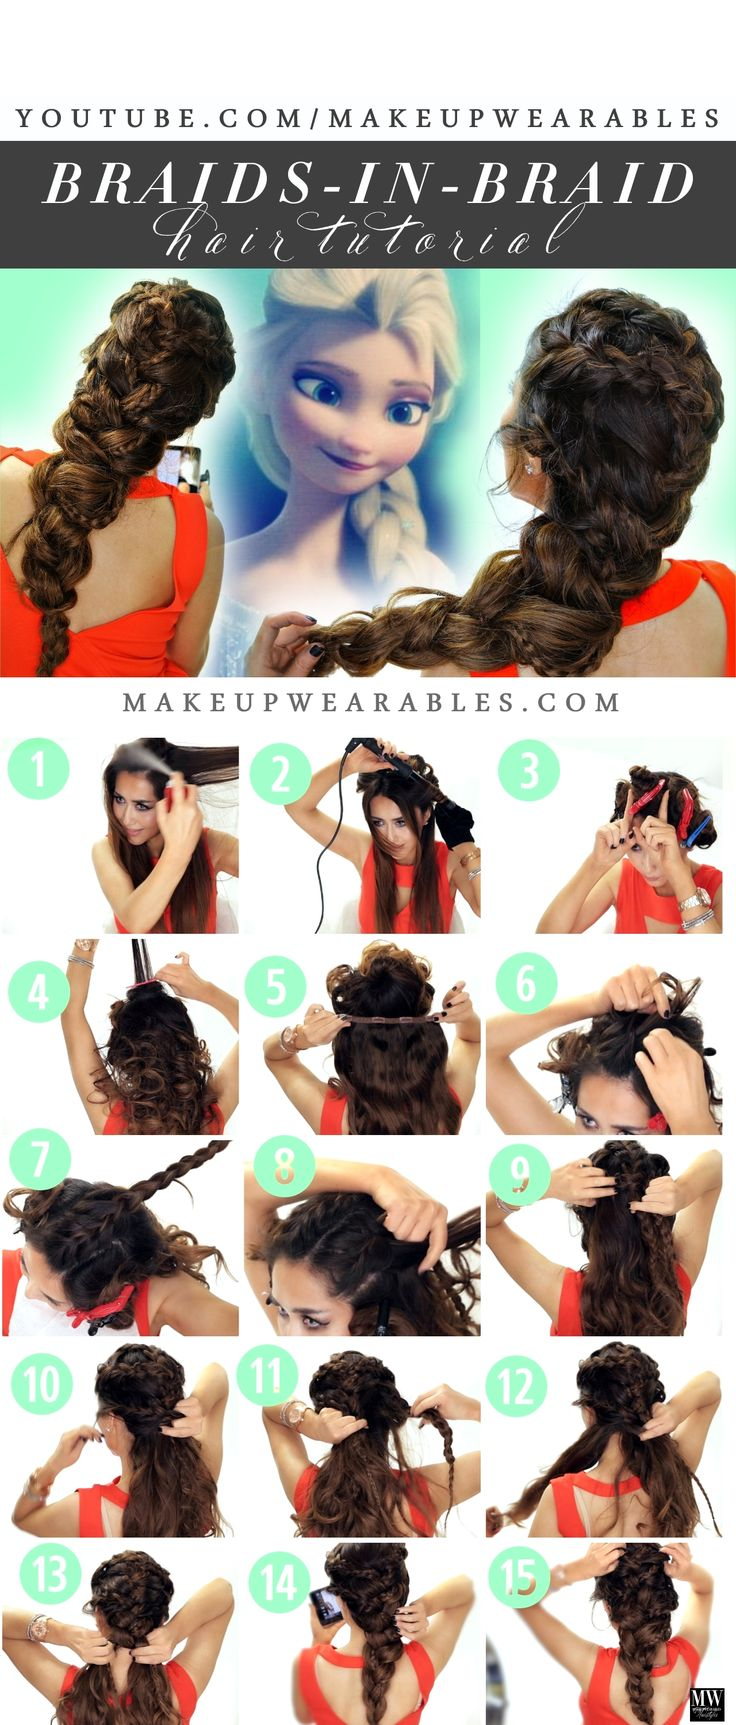 Braids-in-Braid #Hair Tutorial | #Updo Hairstyles